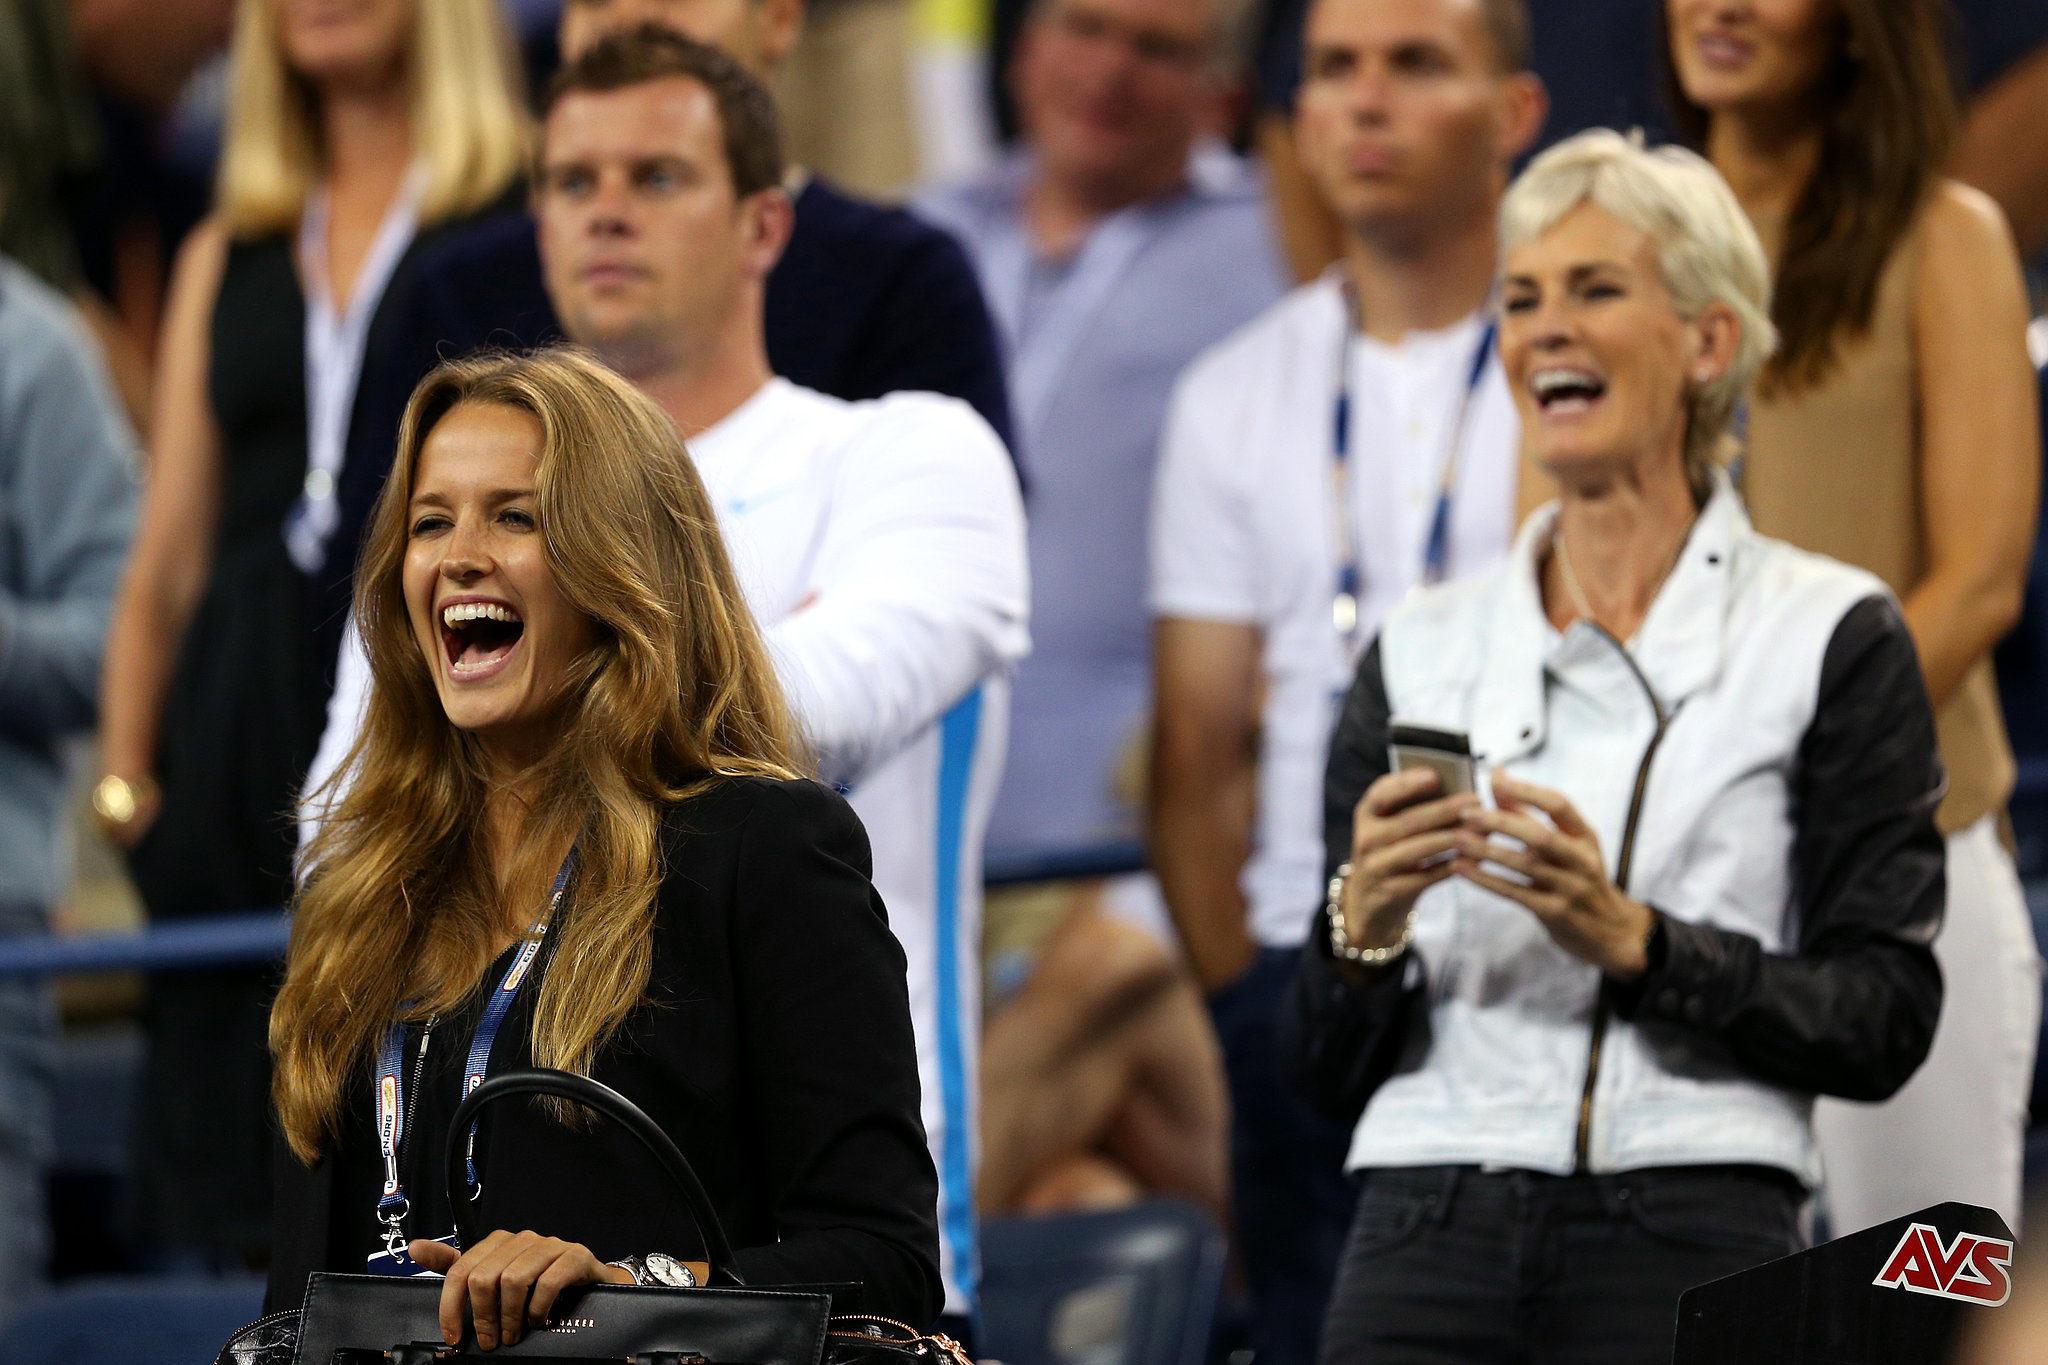 Andy Murray, of Great Britain, had his biggest fans in the stands — his girlfriend, Kim Sears, and his mom, Judy Murray.